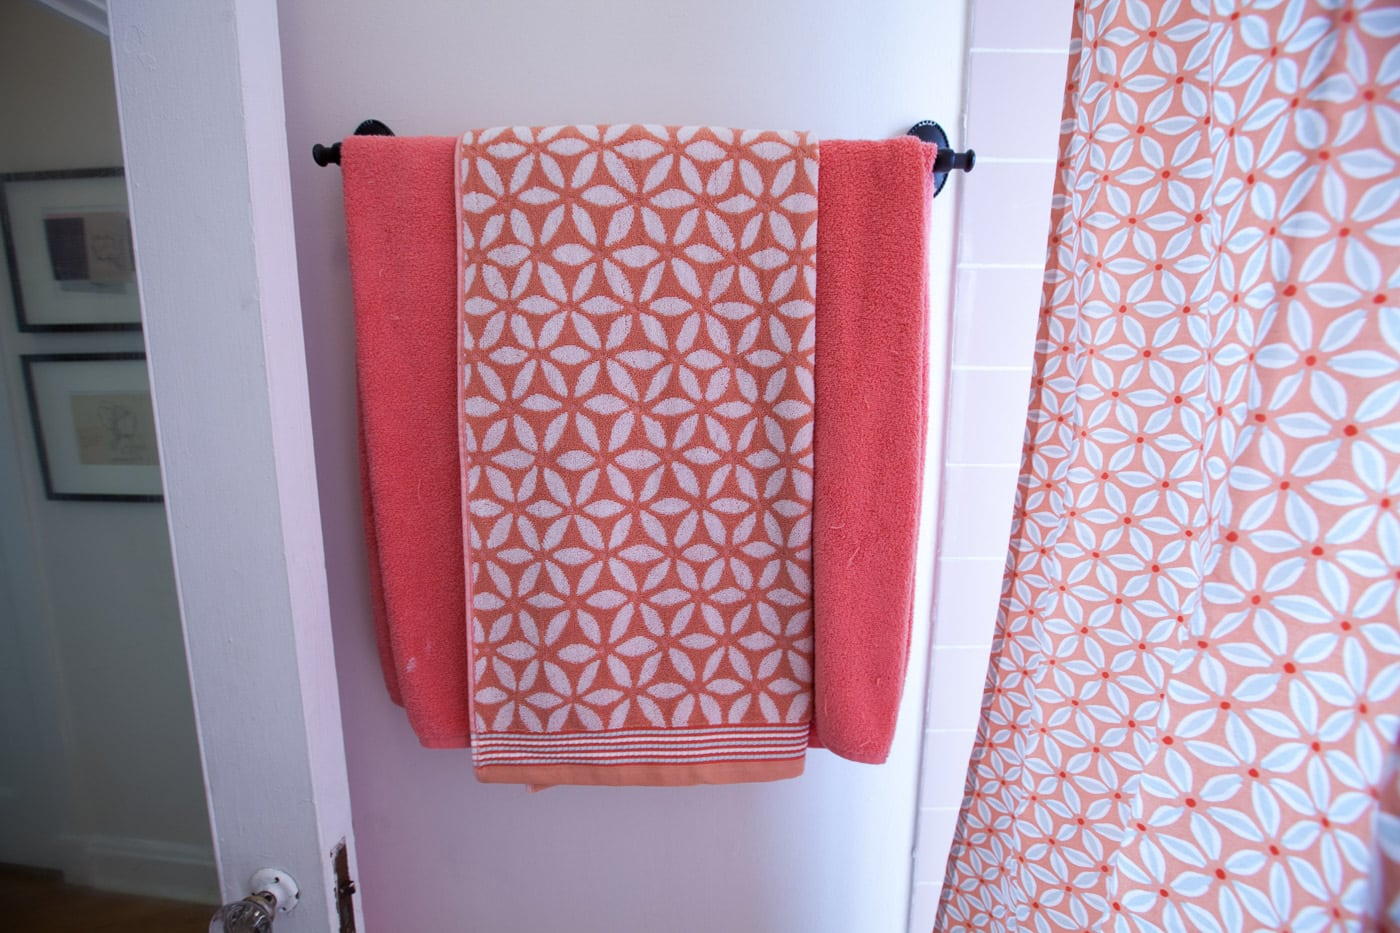 New pink and blue shower curtain and towels for my pink bathroom.